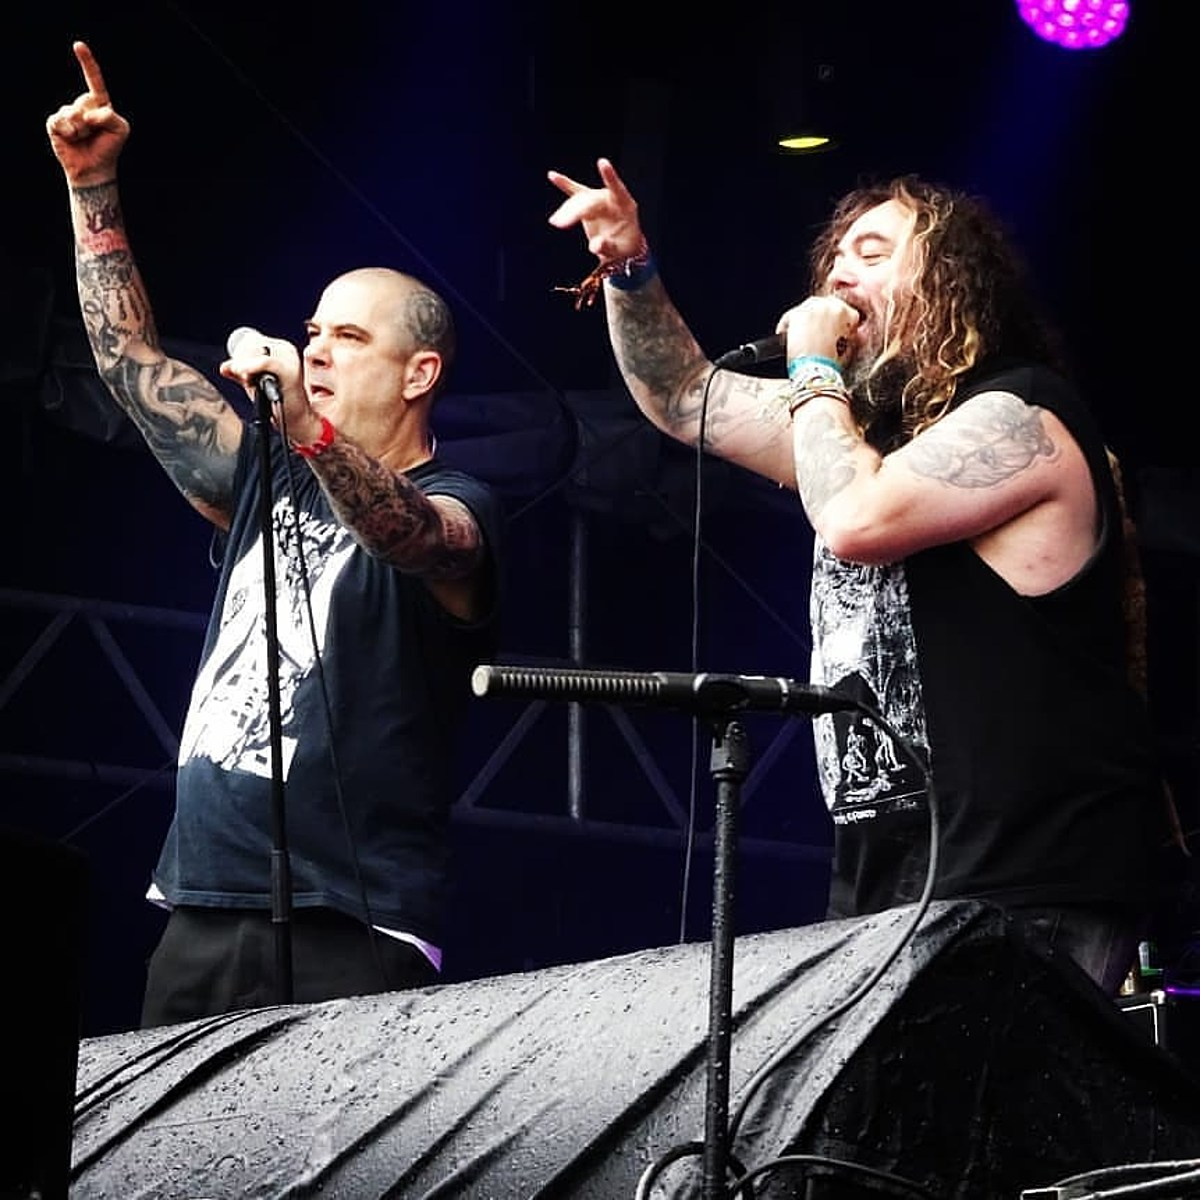 watch Phil Anselmo play Pantera songs with Max Cavalera Satyr in Europe